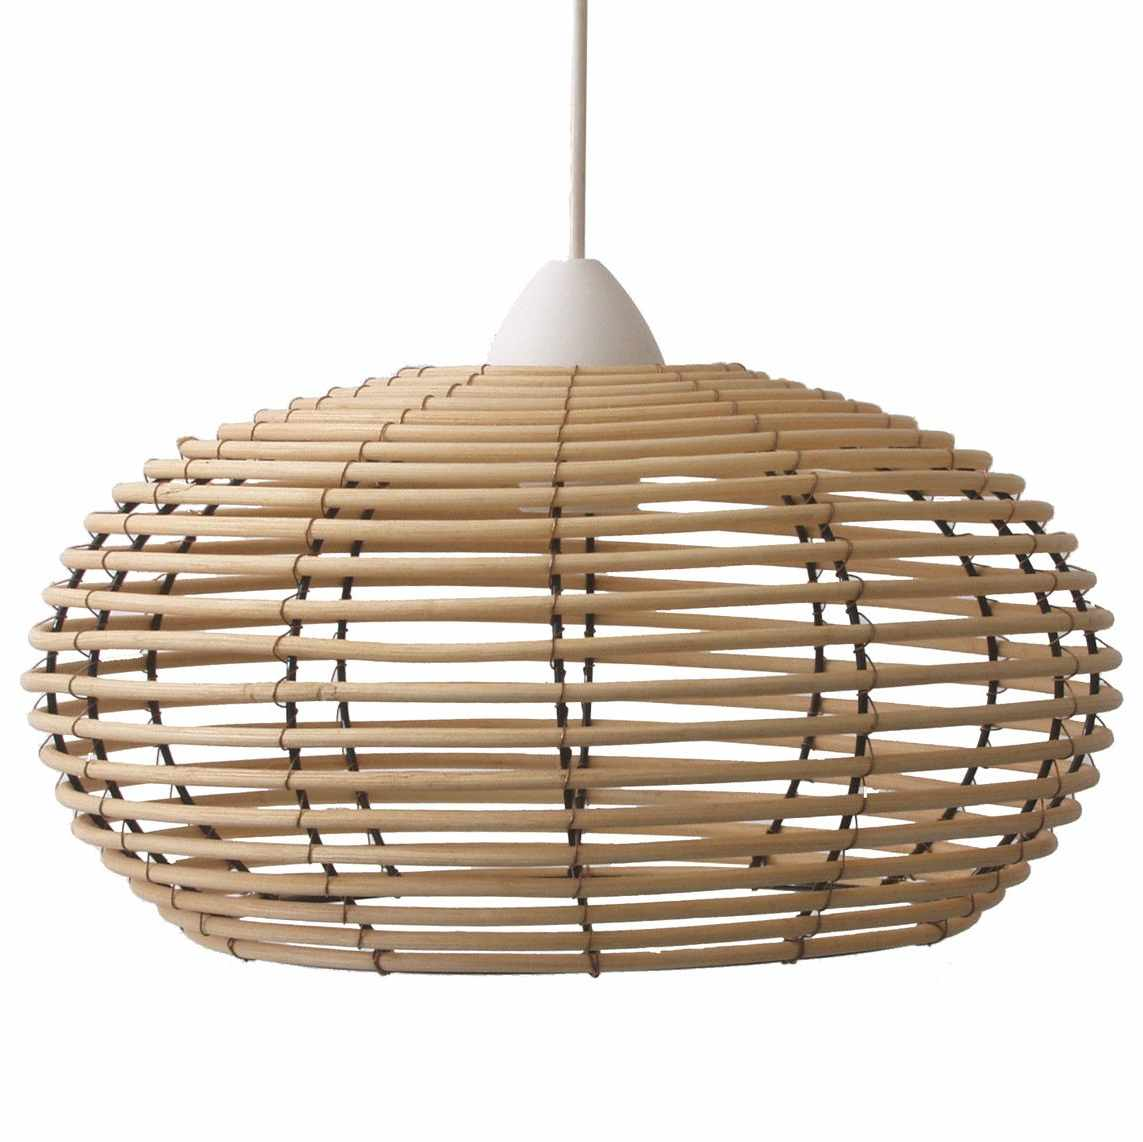 Suspension-Metropolight-BAO-Suspension-Rotin-Naturel-Ligntonline